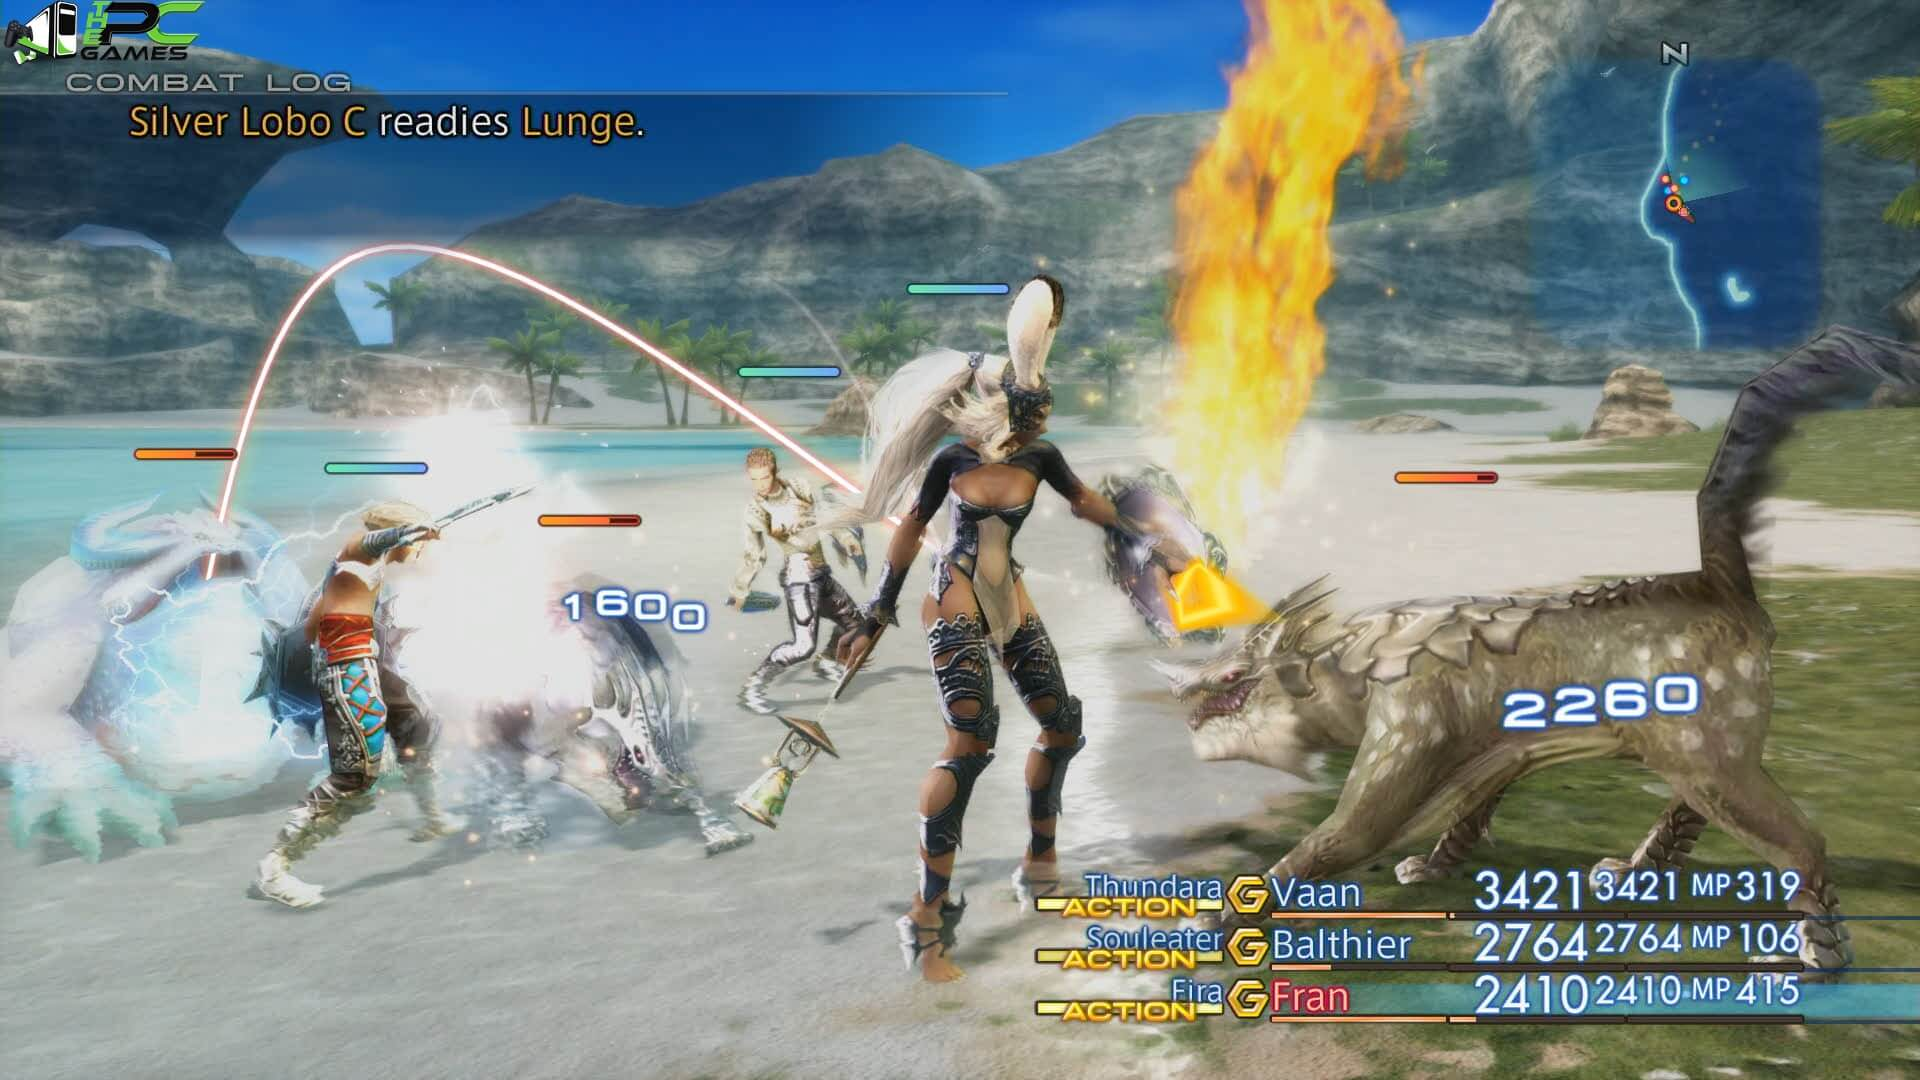 Is Final Fantasy XII The Zodiac Age Coming to PC